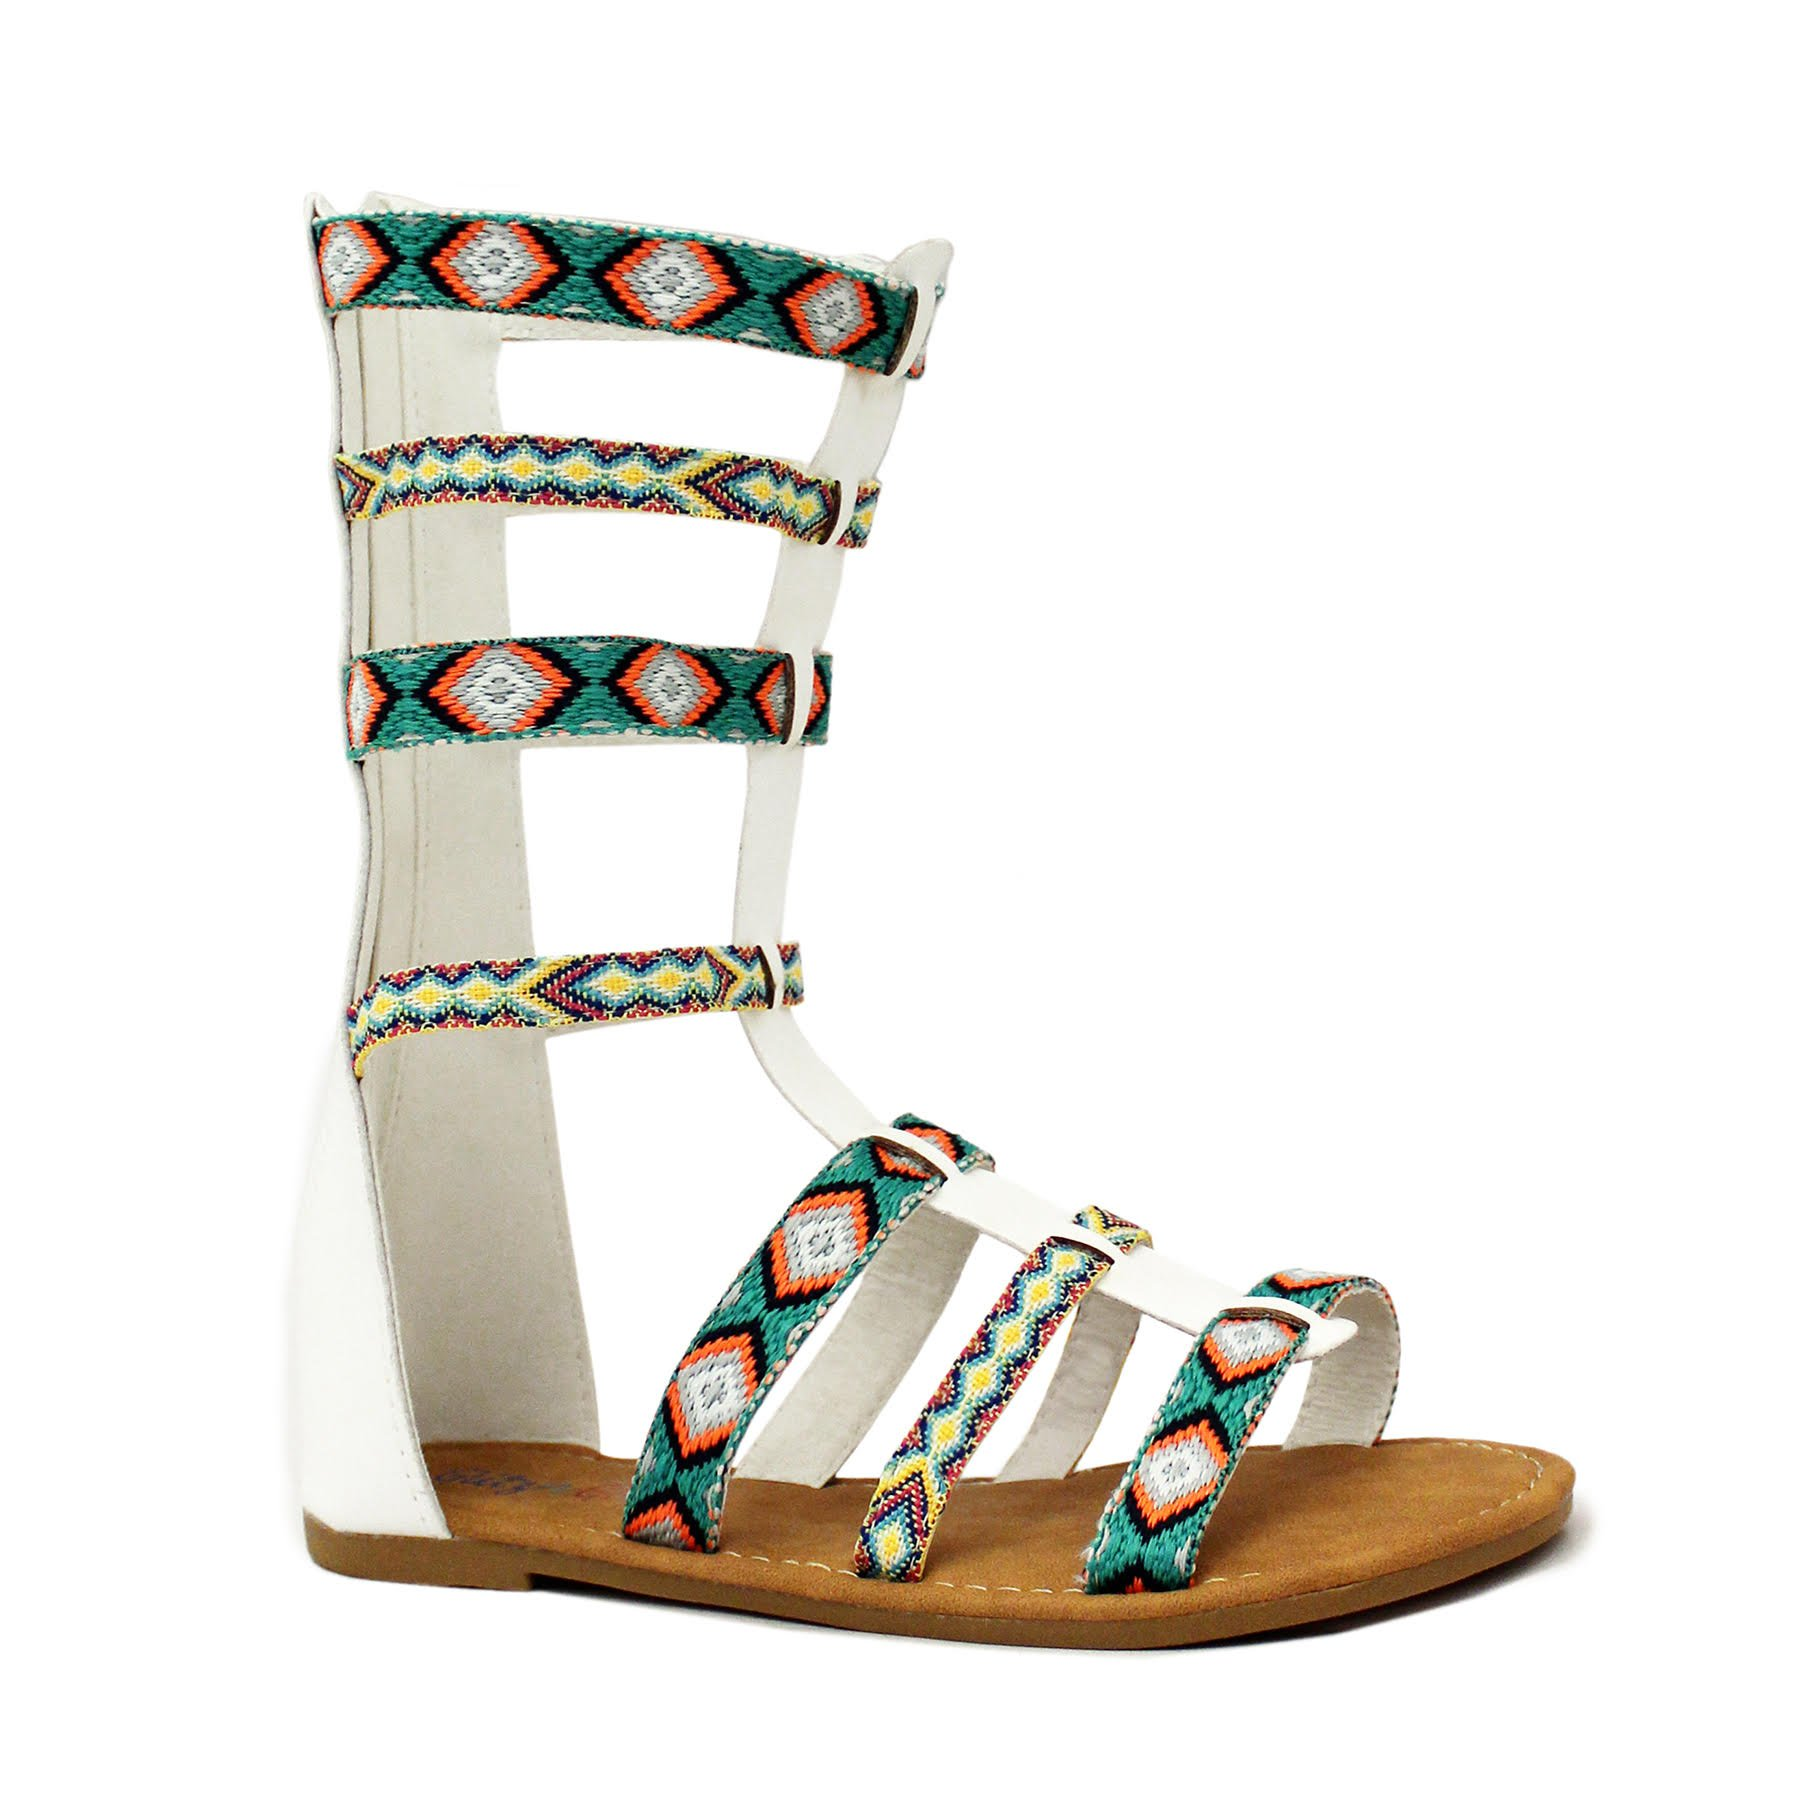 f3dd8782c2b978 Get Quotations · Yoki Shose Girls Gladiator Sandals Strappy Flat Knee High  Zip up Boots Shoes